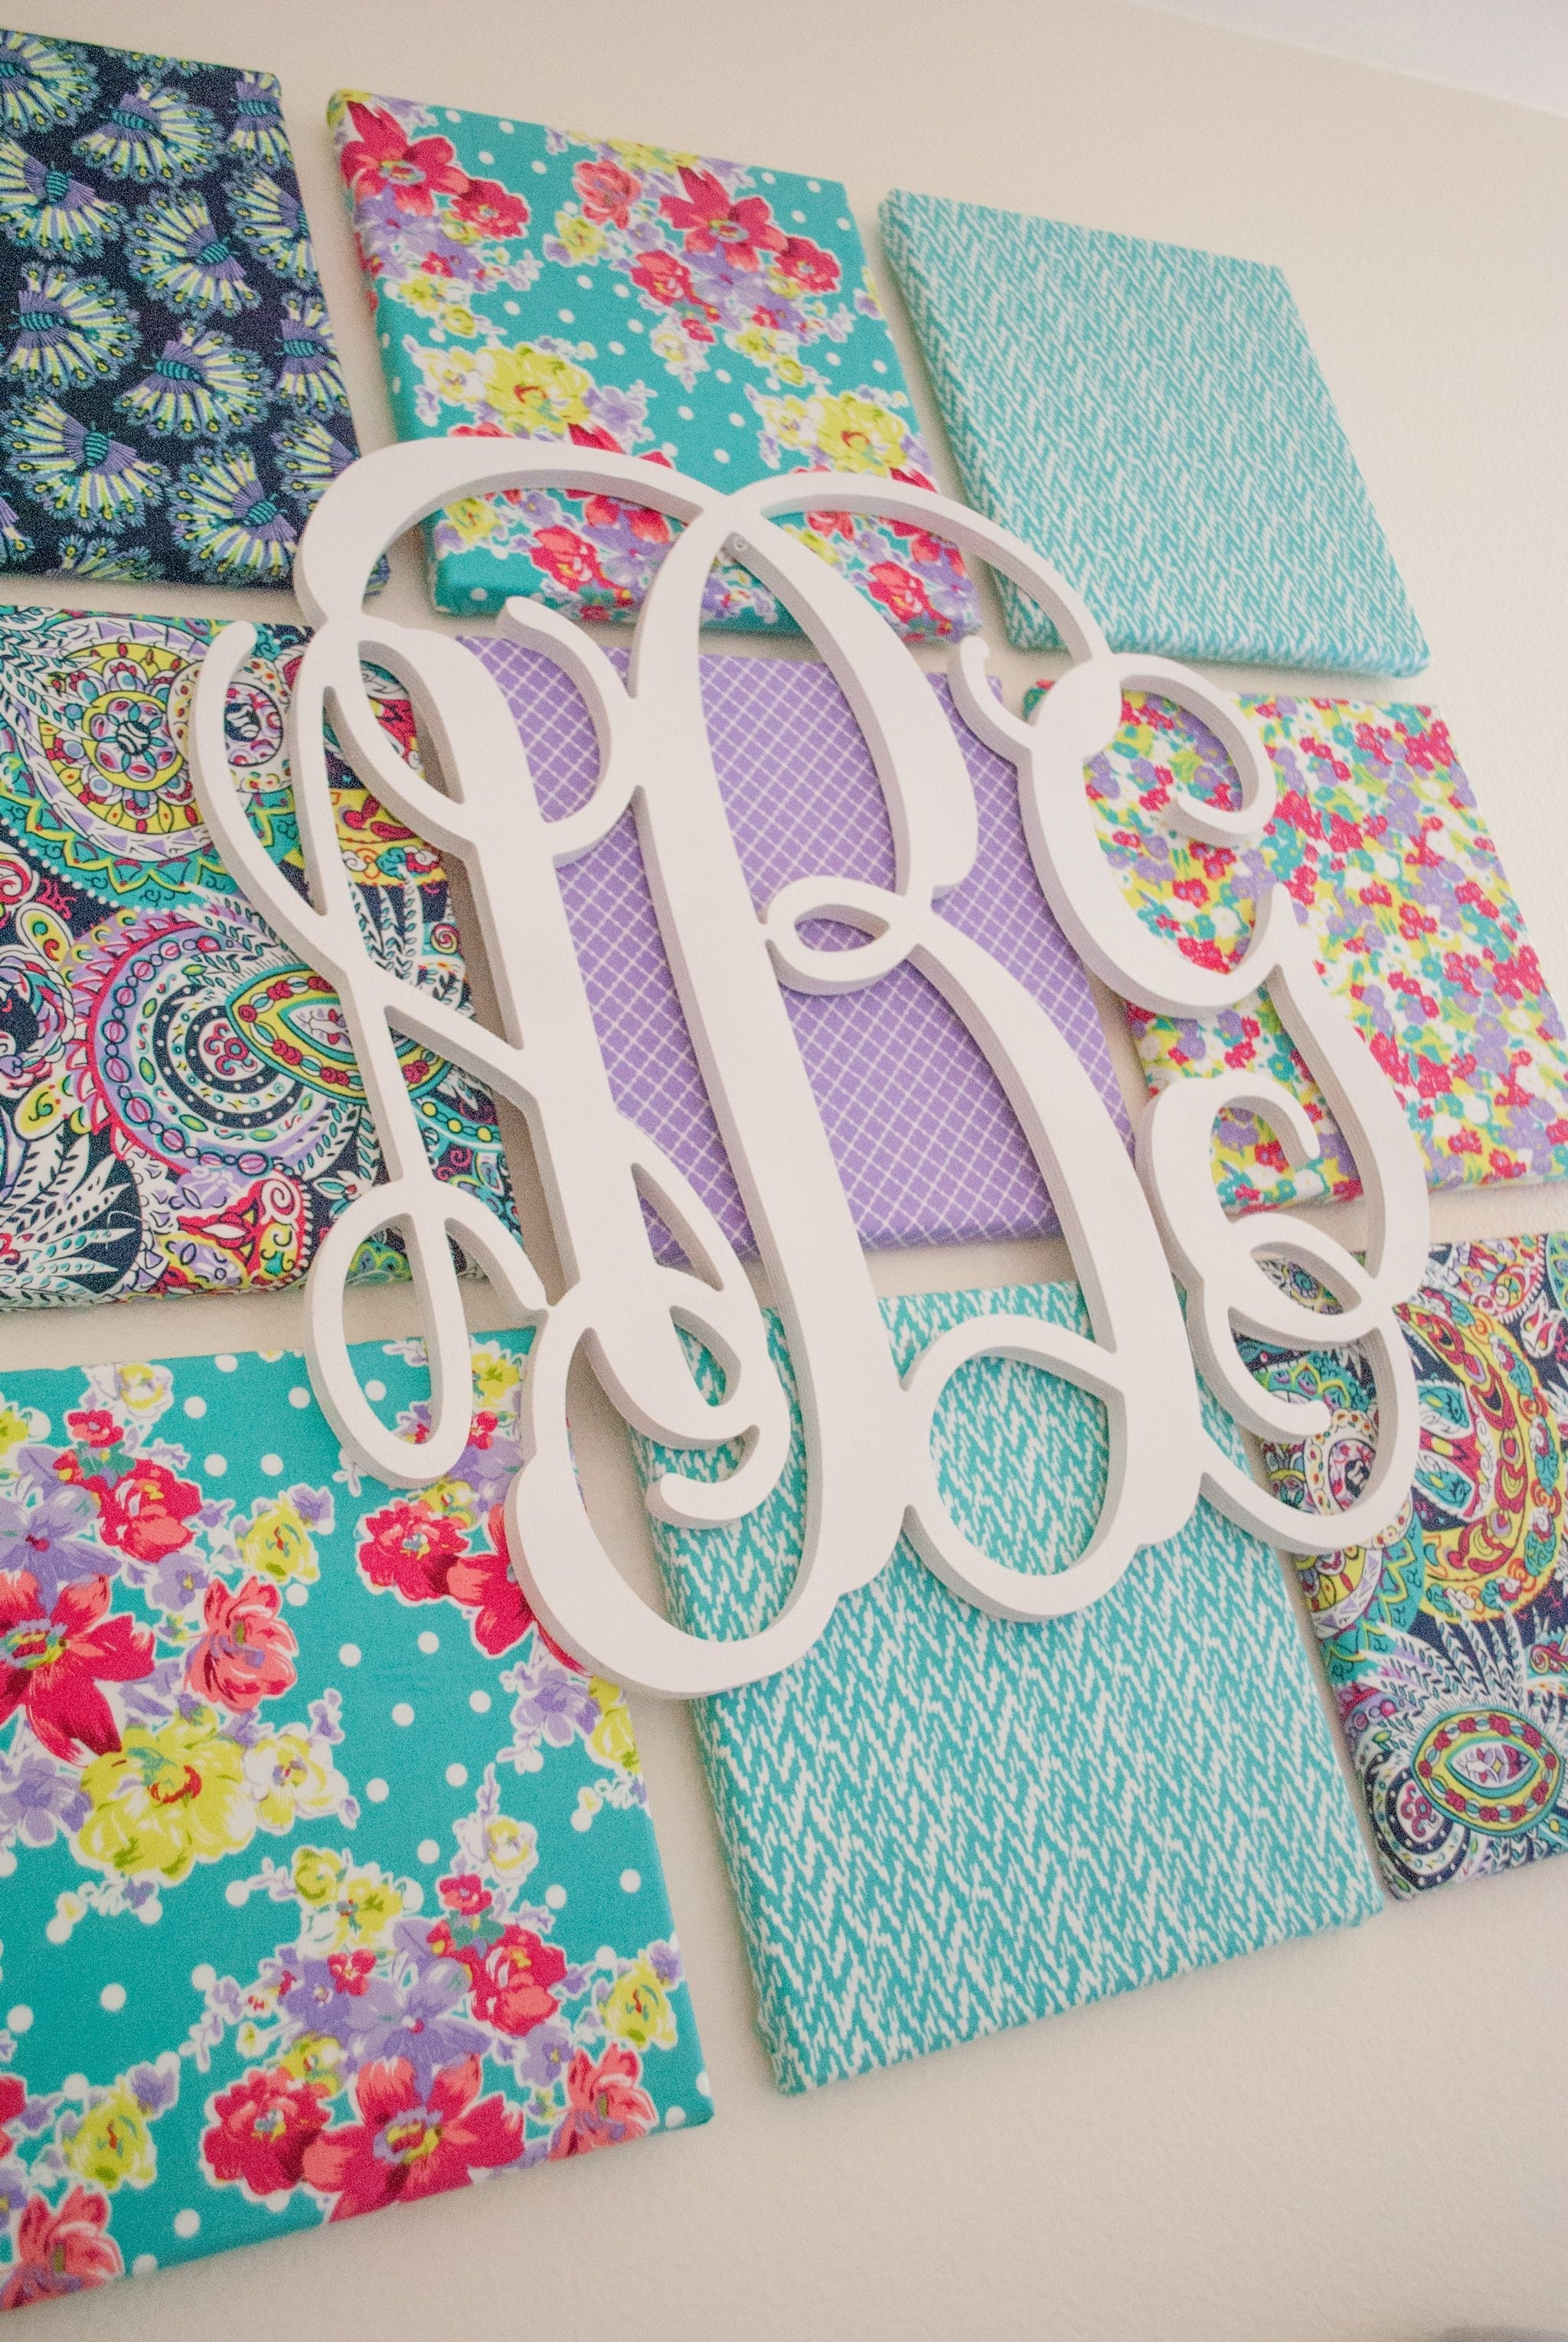 Diy Fabric Wall Art | Monogram Wall, Kids Rooms And Monograms Inside Current Diy Fabric Wall Art (View 7 of 15)